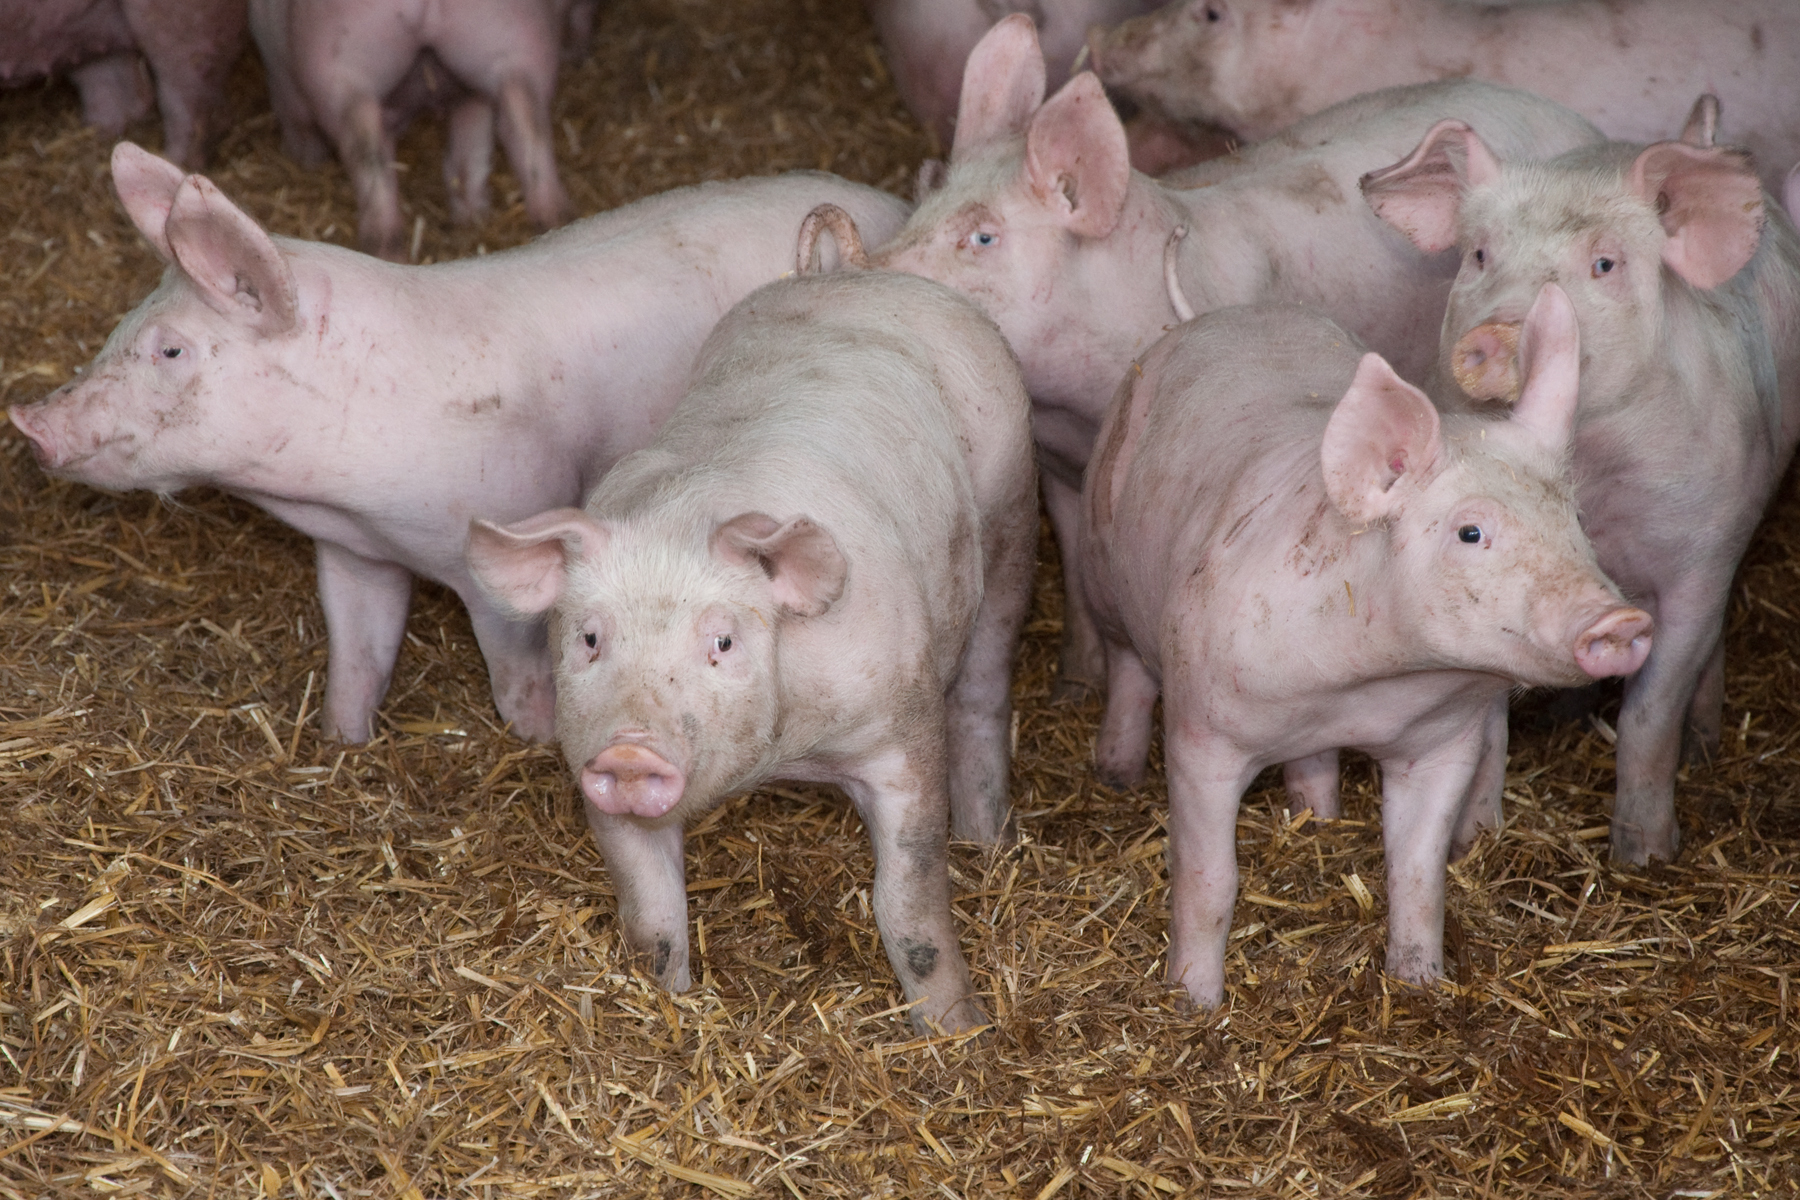 Antibiotic usage in the UK pig herd has dropped by more than 50% over the past two years